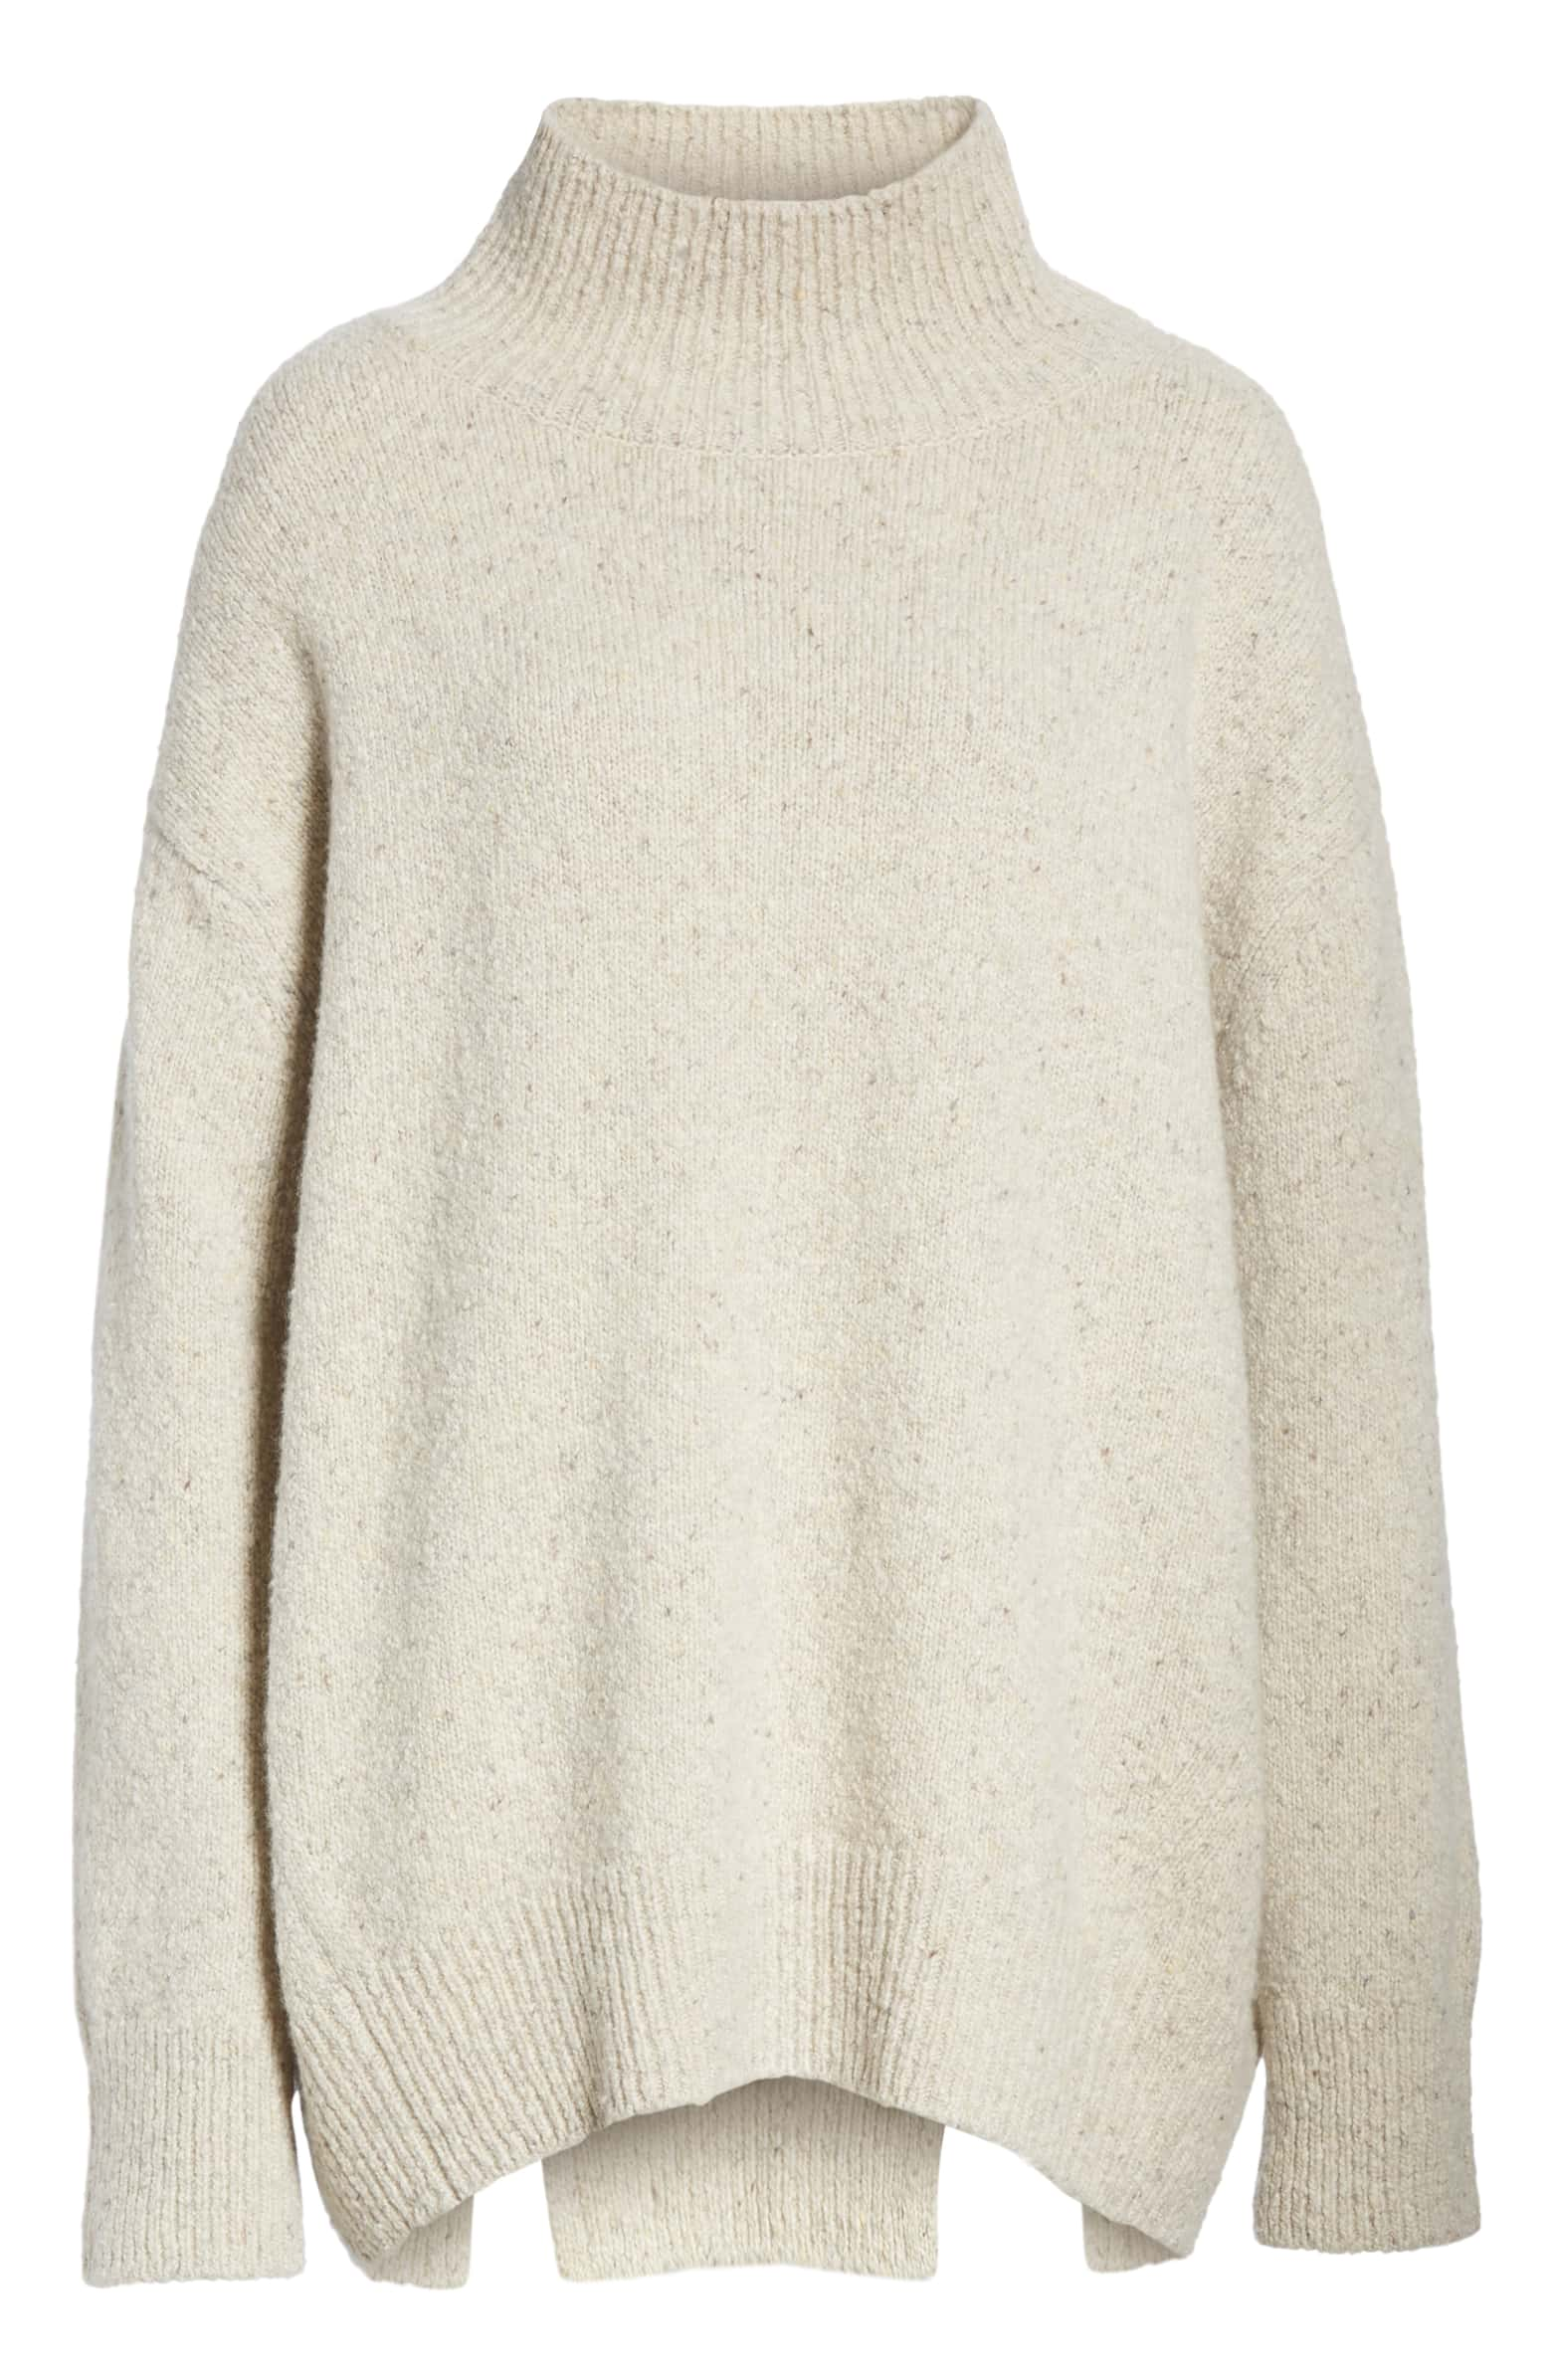 Vince Oversized Sweater - An oversized sweater is yet another must for fall. I love the neck and the cutouts in the back of this Vince piece.